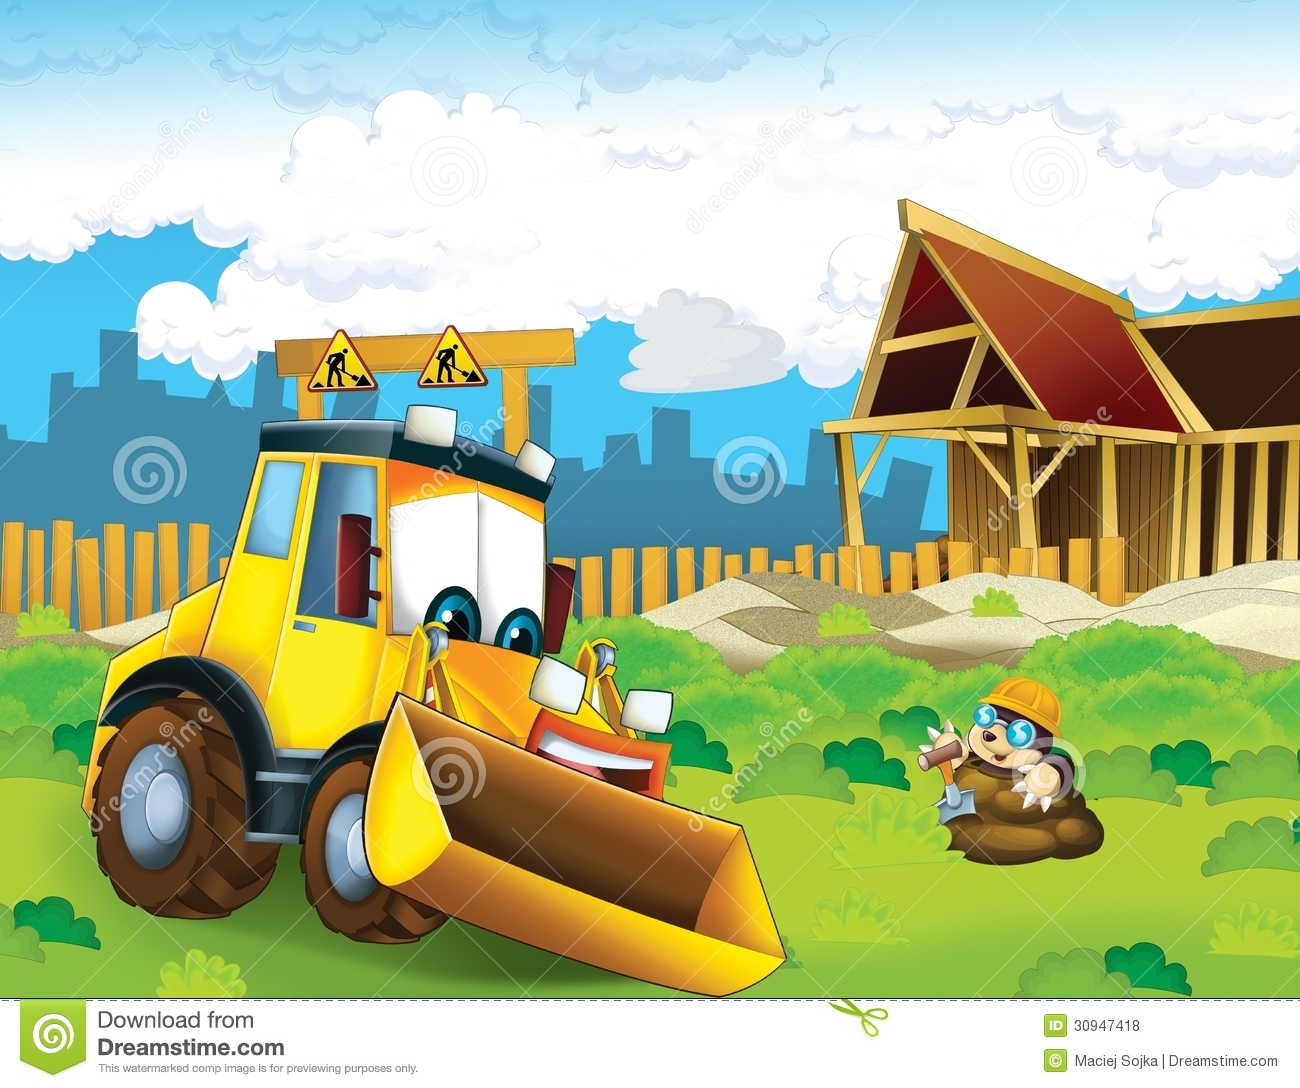 The Cartoon Digger Illustration For The Children Royalty